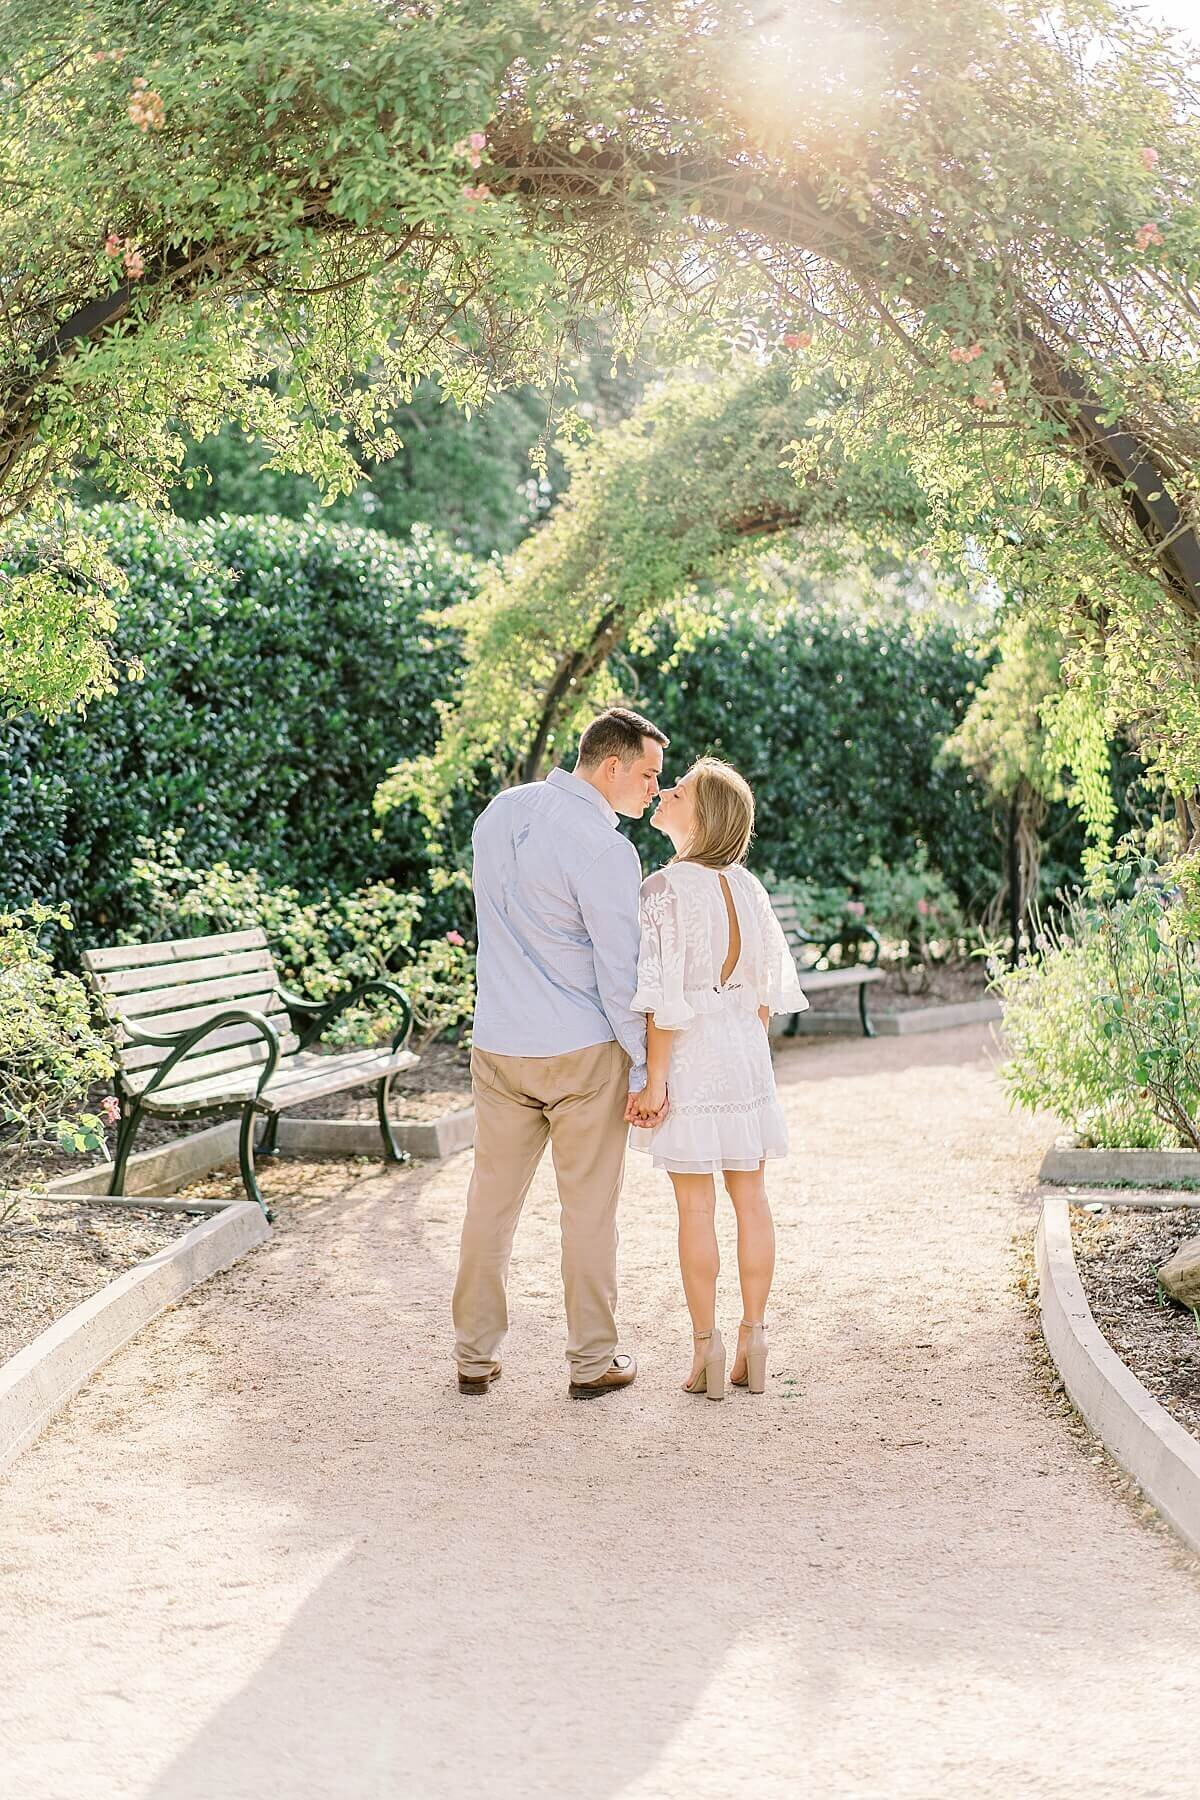 McGovern-Centennial-Gardens-Hermann-Park-Engagement-Session-Alicia-Yarrish-Photography_0058